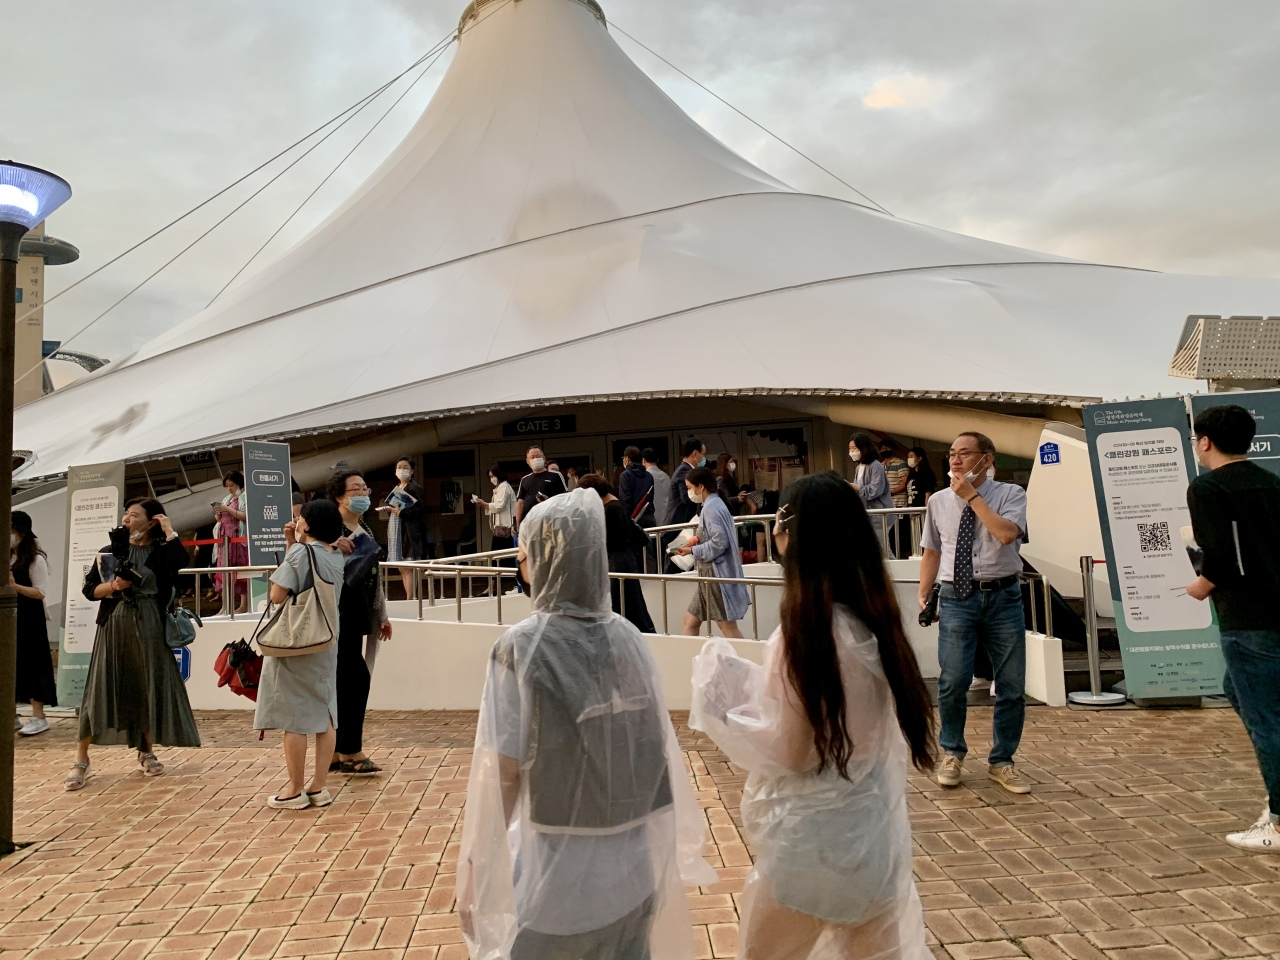 Visitors in raincoats pass by the Alpensia Music Tent in PyeongChang, Gangwon Province, Friday. (Im Eun-byel / The Korea Herald)